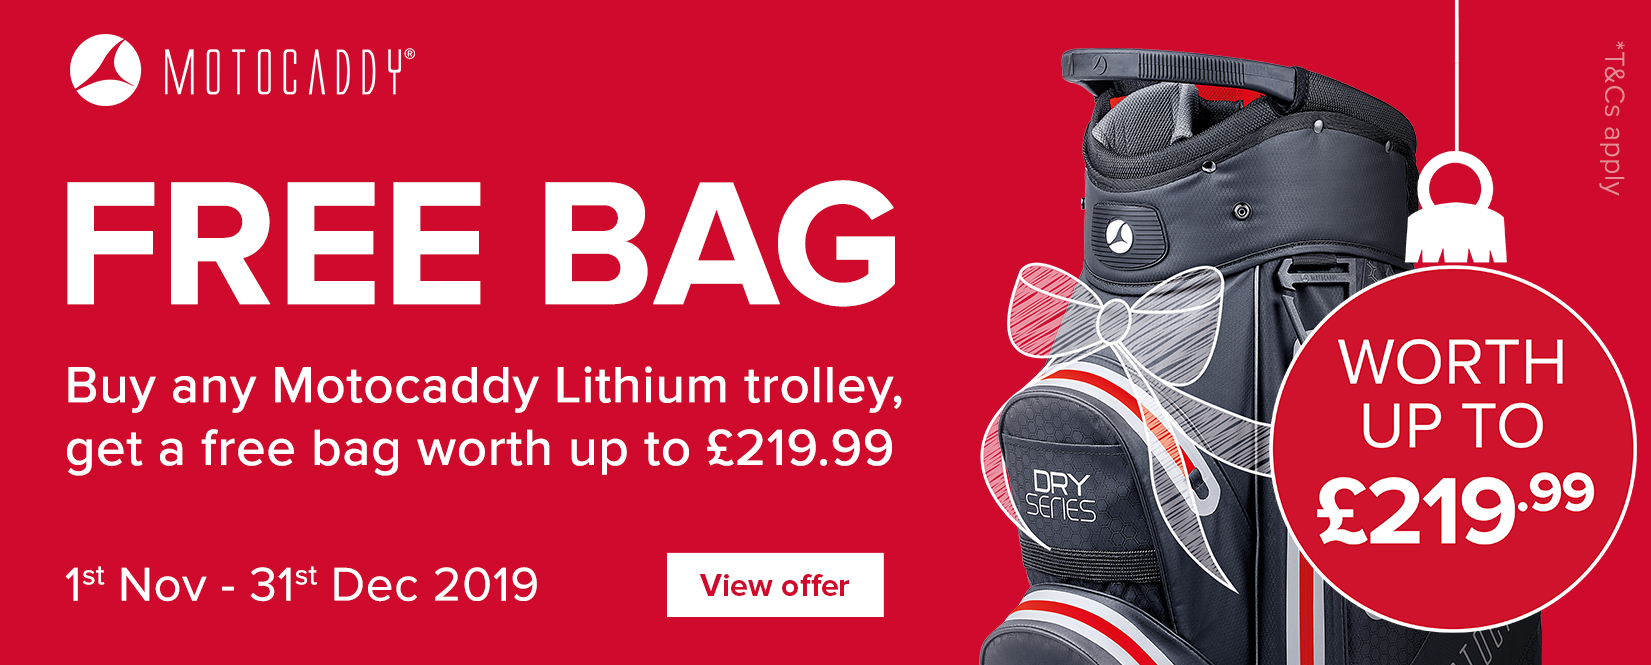 Motocaddy Free Bag 2019